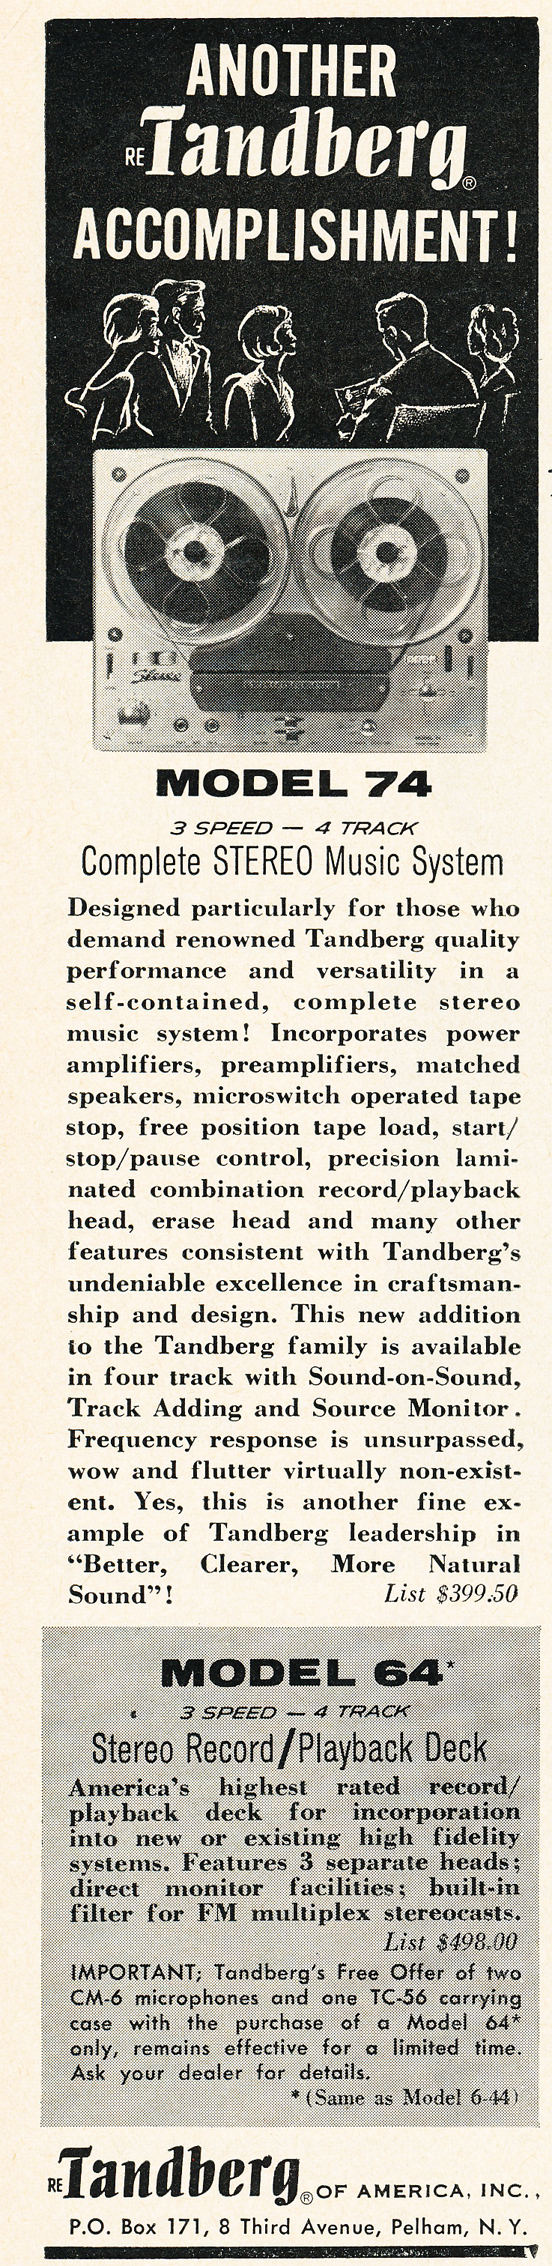 1962 ad for the Tandberg 74 reel to reel tape recorder in Phantom Productions' vintage reel 2 reel tape recording collection